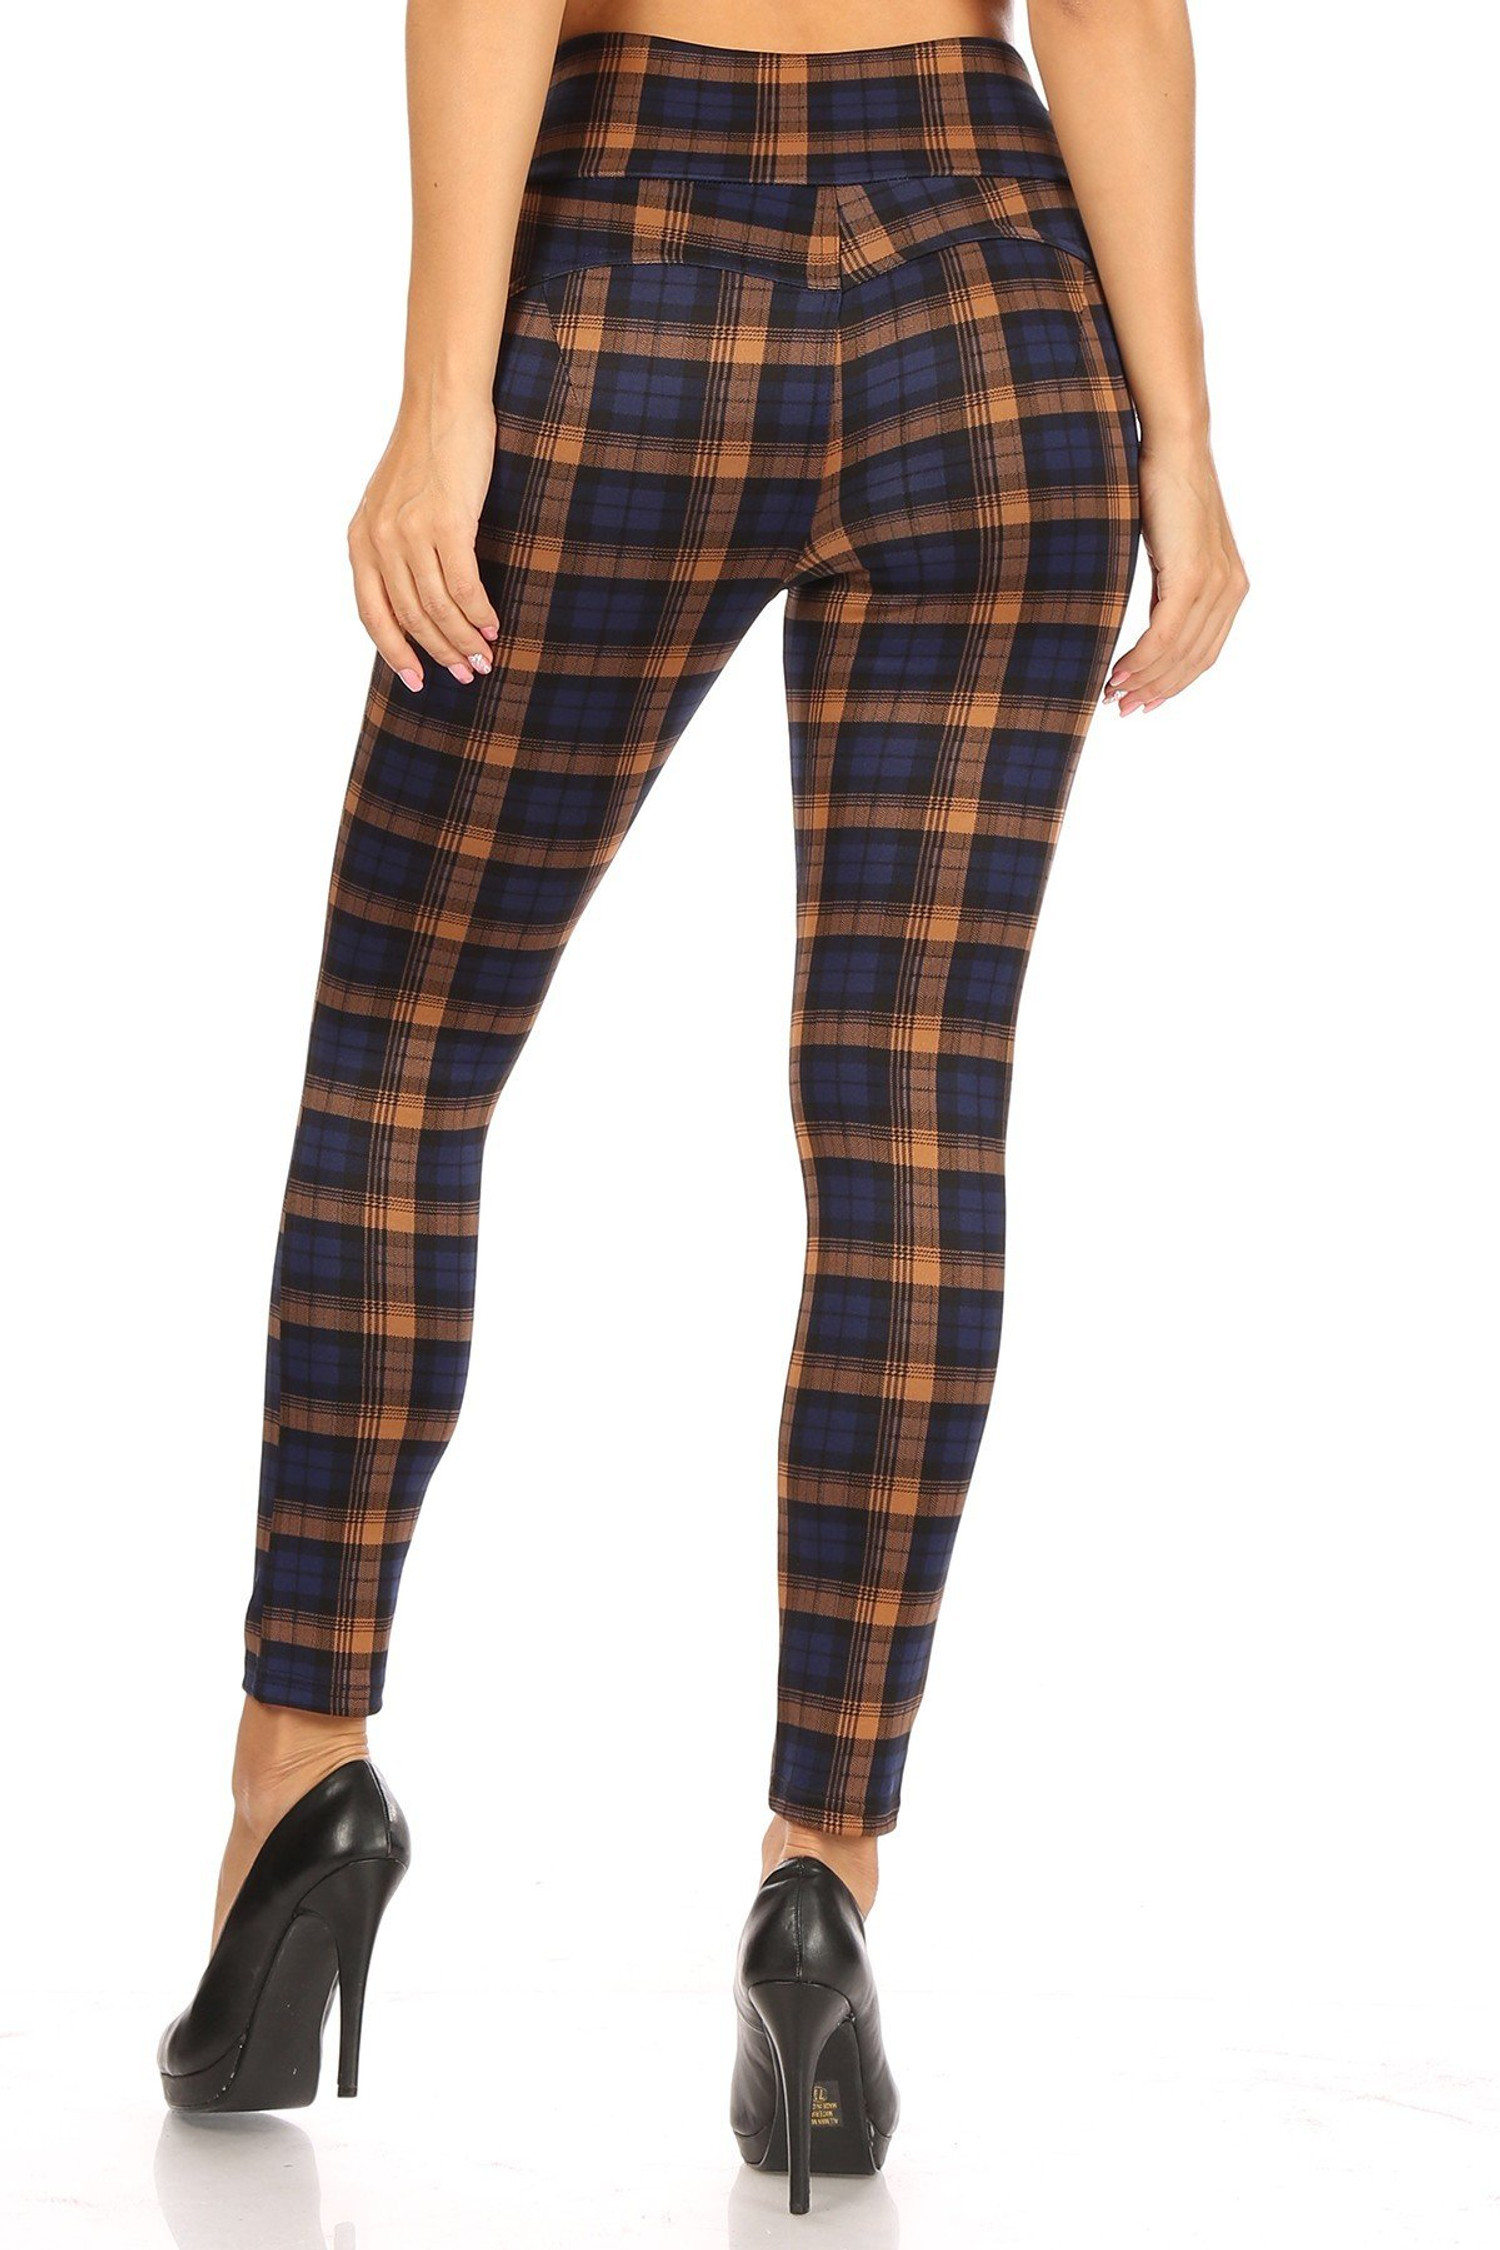 Navy Plaid High Waisted Body Sculpting Treggings with Pockets